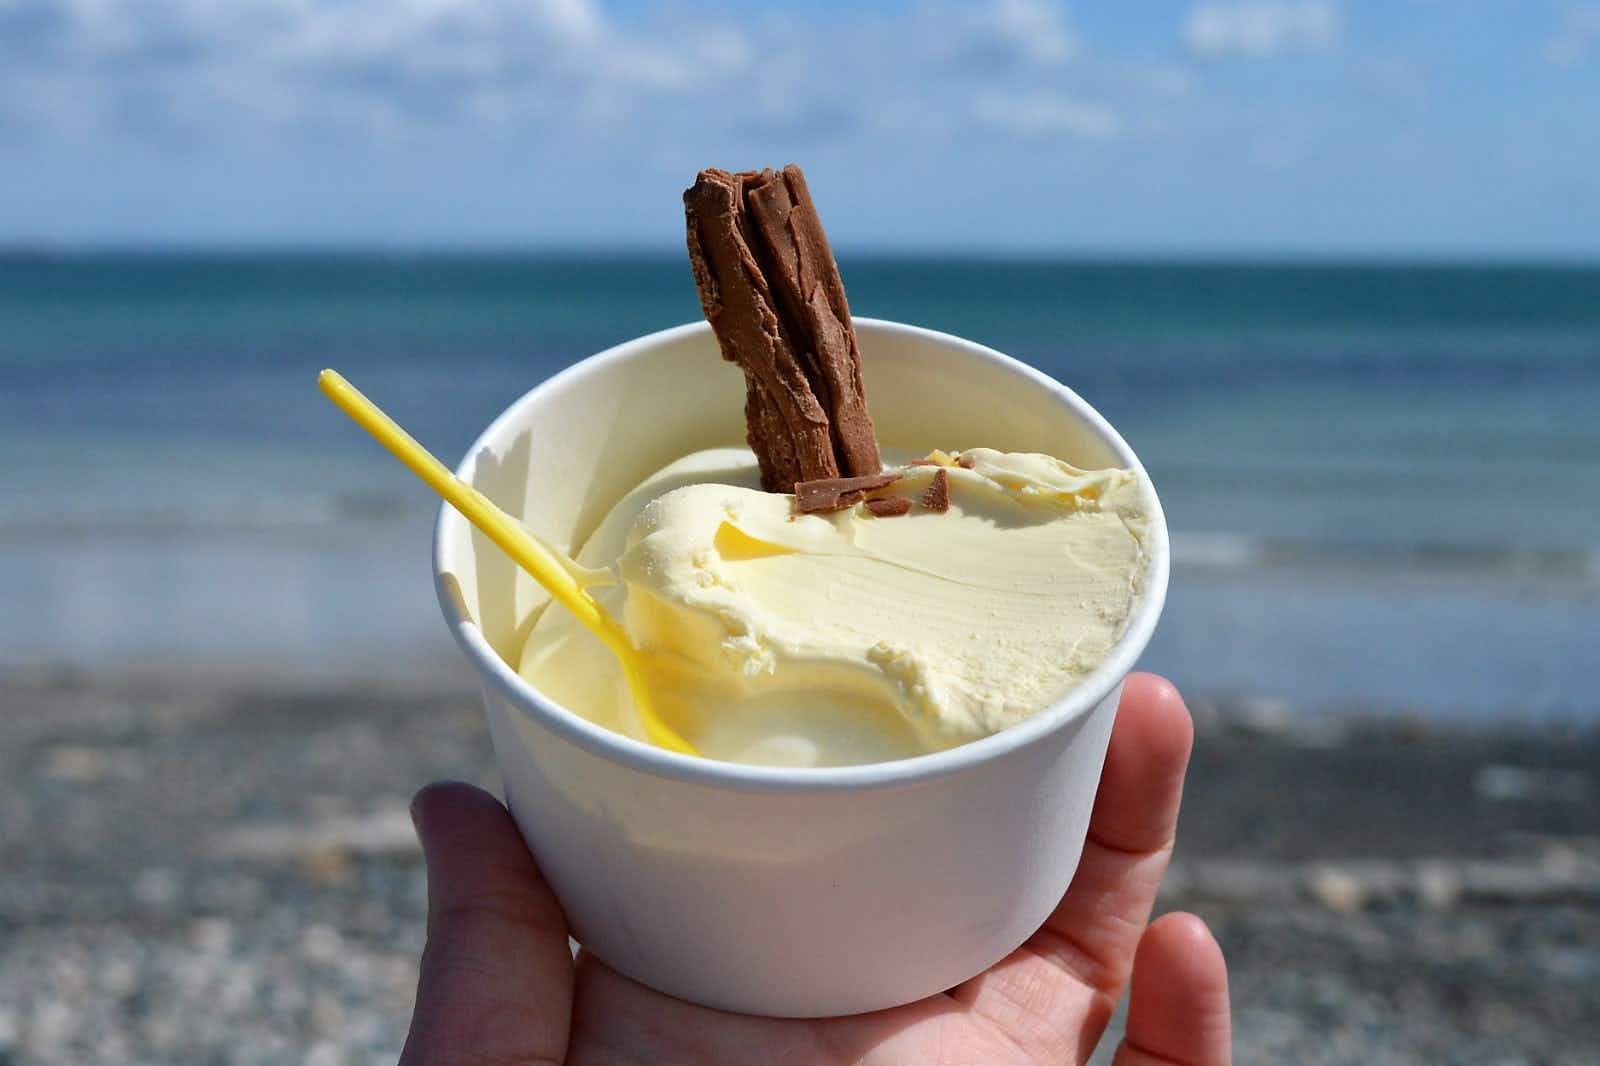 If you're in Penzance and you've got to have an ice cream, Jelbert's is the place to go © Emma Sparks / Lonely Planet